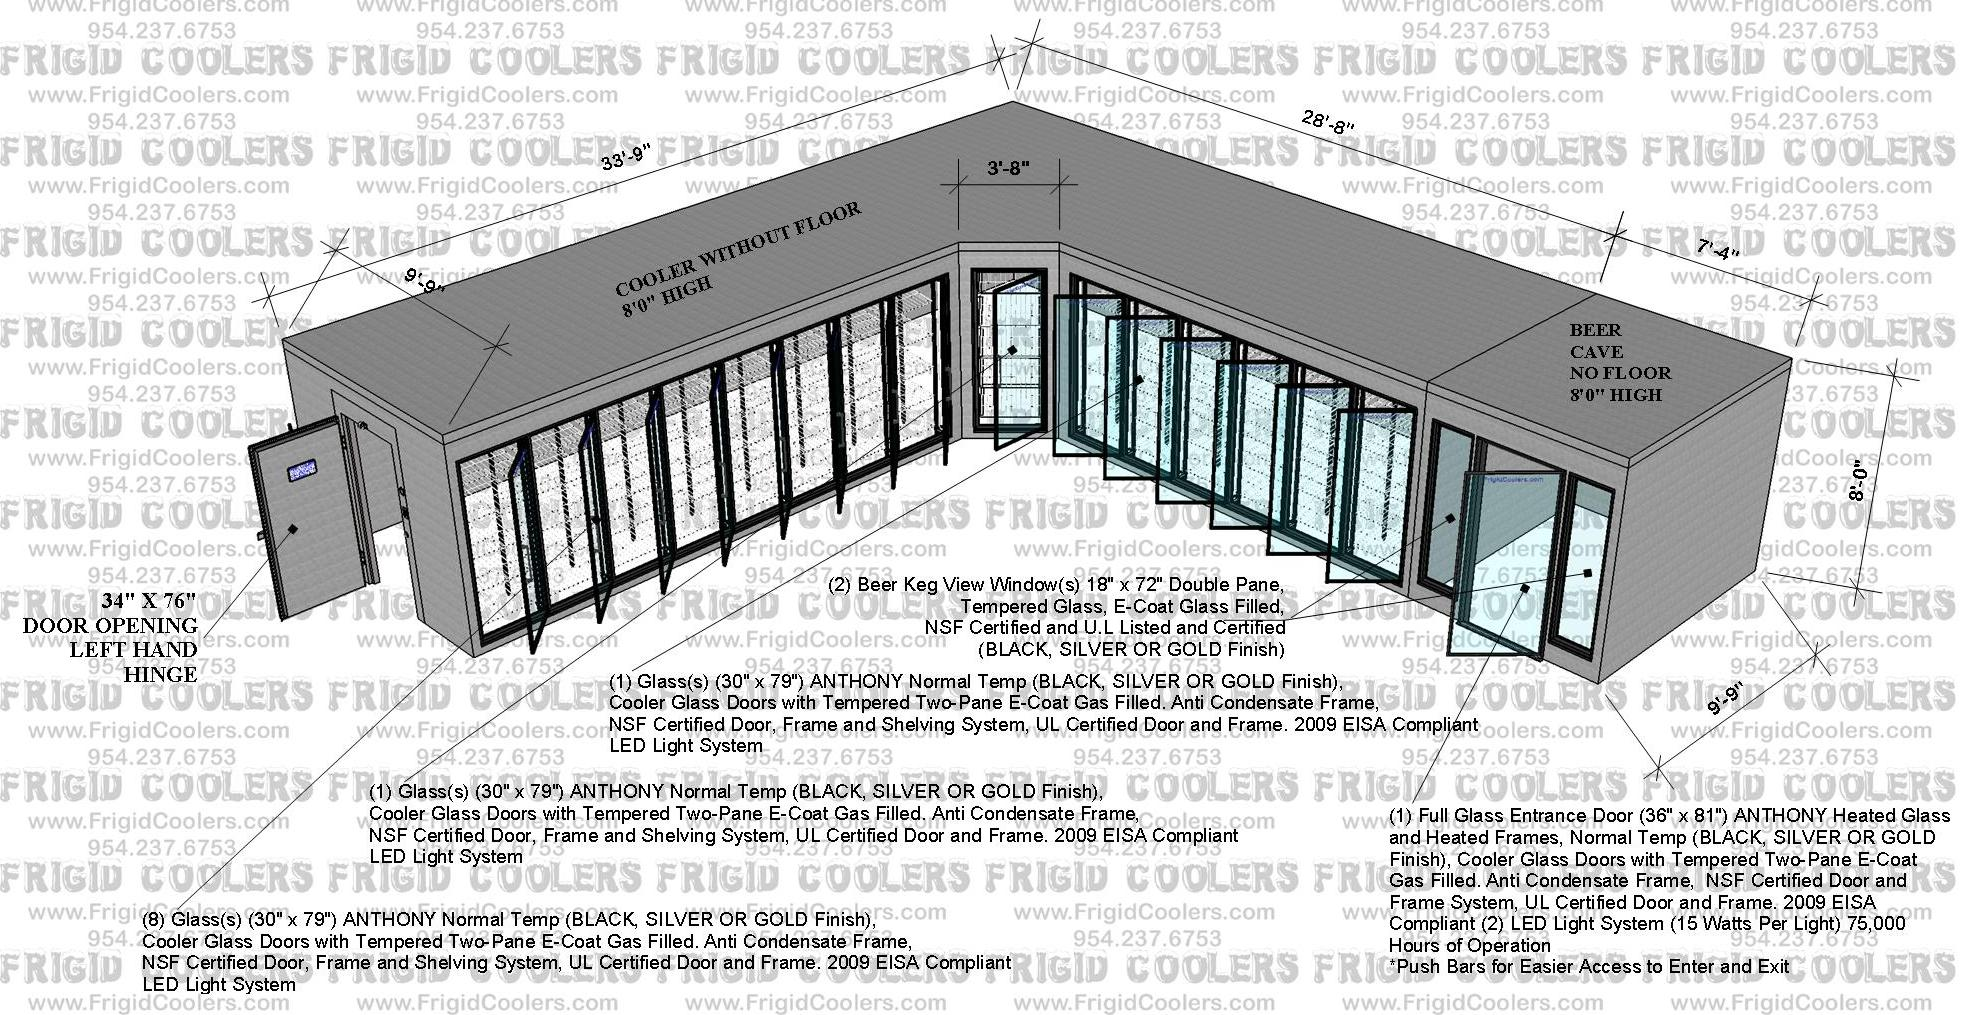 L-SHAPE COOLER AND BEER CAVE 10X33-9X36X10X8 HIGH 8-GDS 6-GDS 1-GD 1-GED 2-VIEW WINDOWS_2